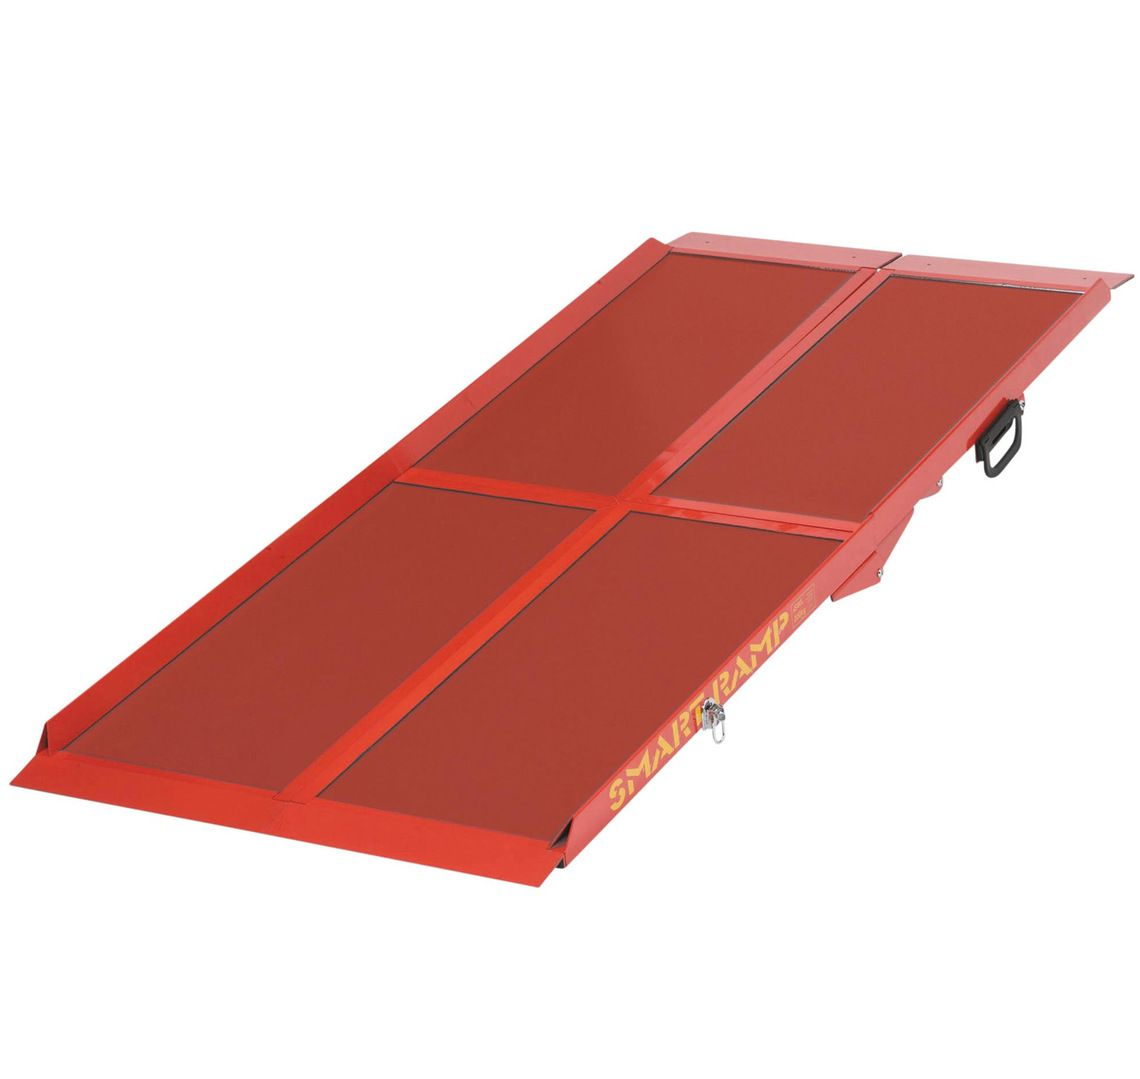 Folding aluminium mobility ramps for wheelchairs